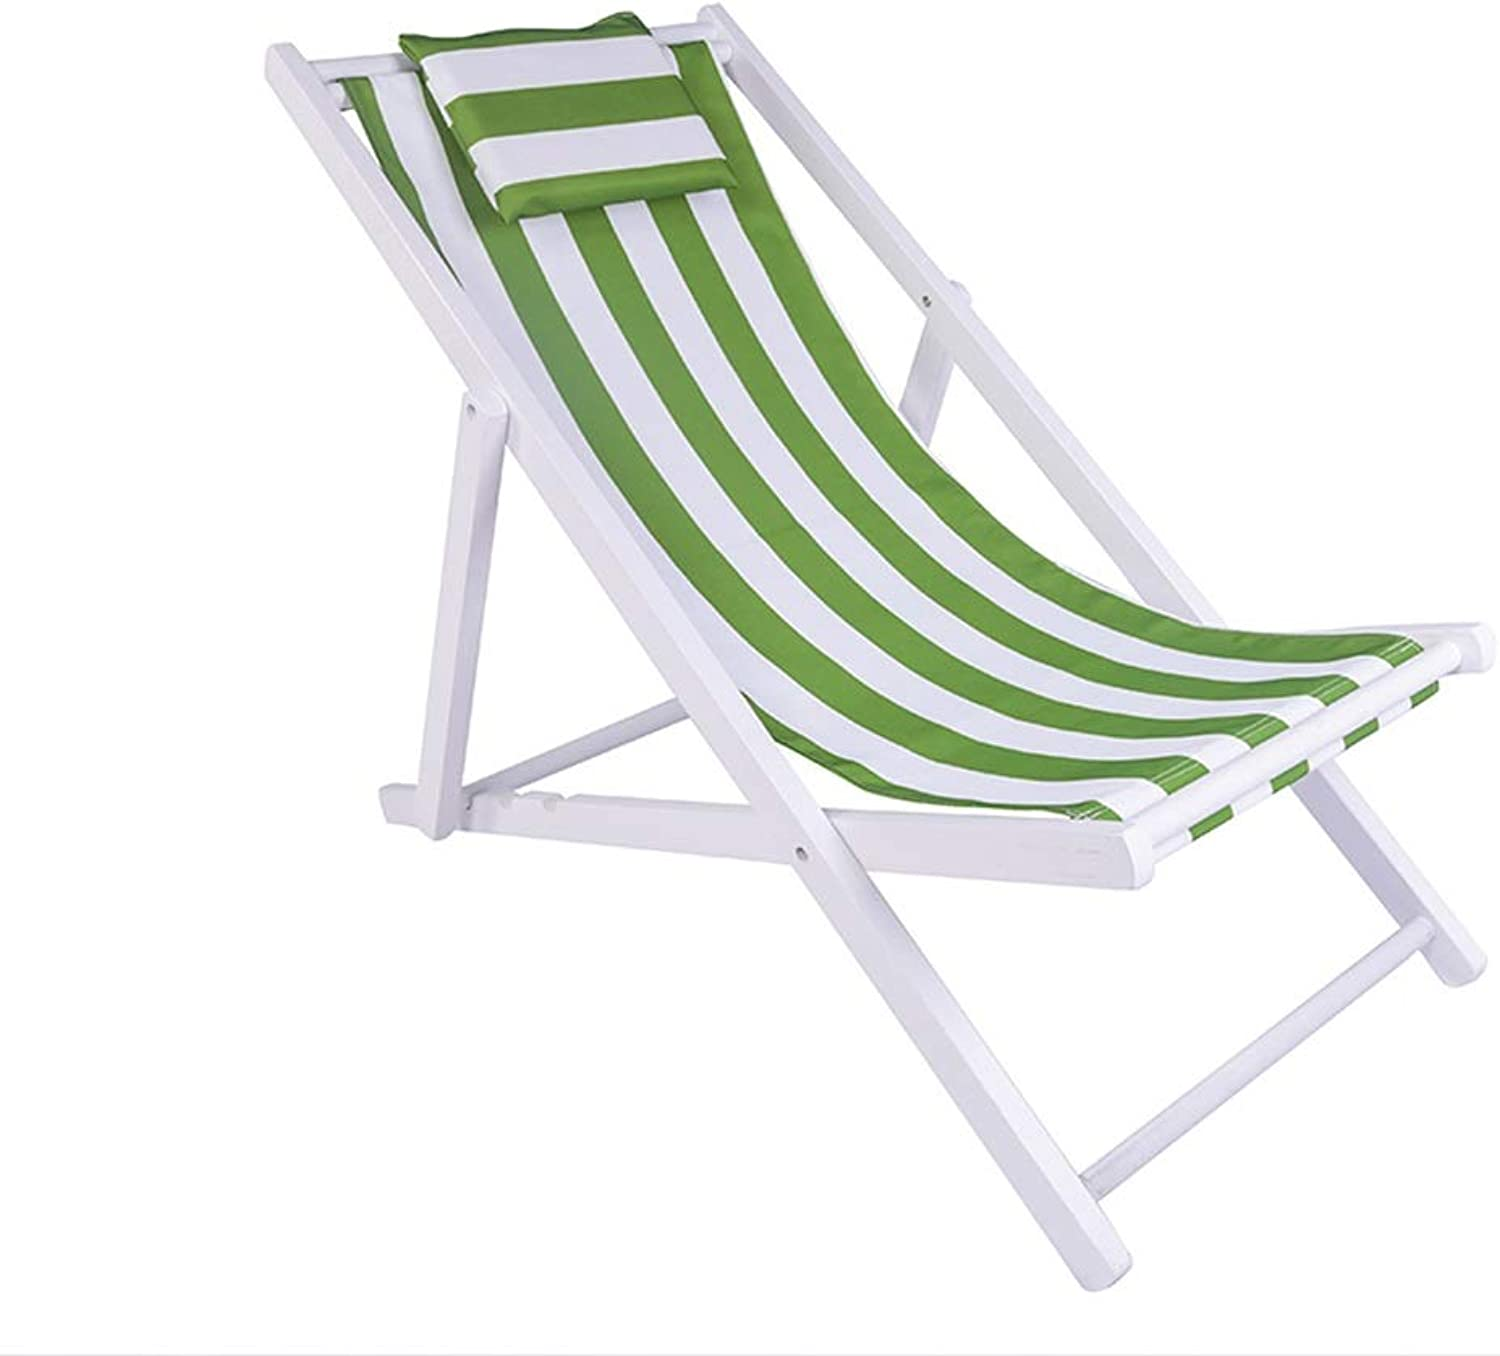 Portable Beach Chair Foldable Wood Recliner Outdoor Canvas Camping Chair